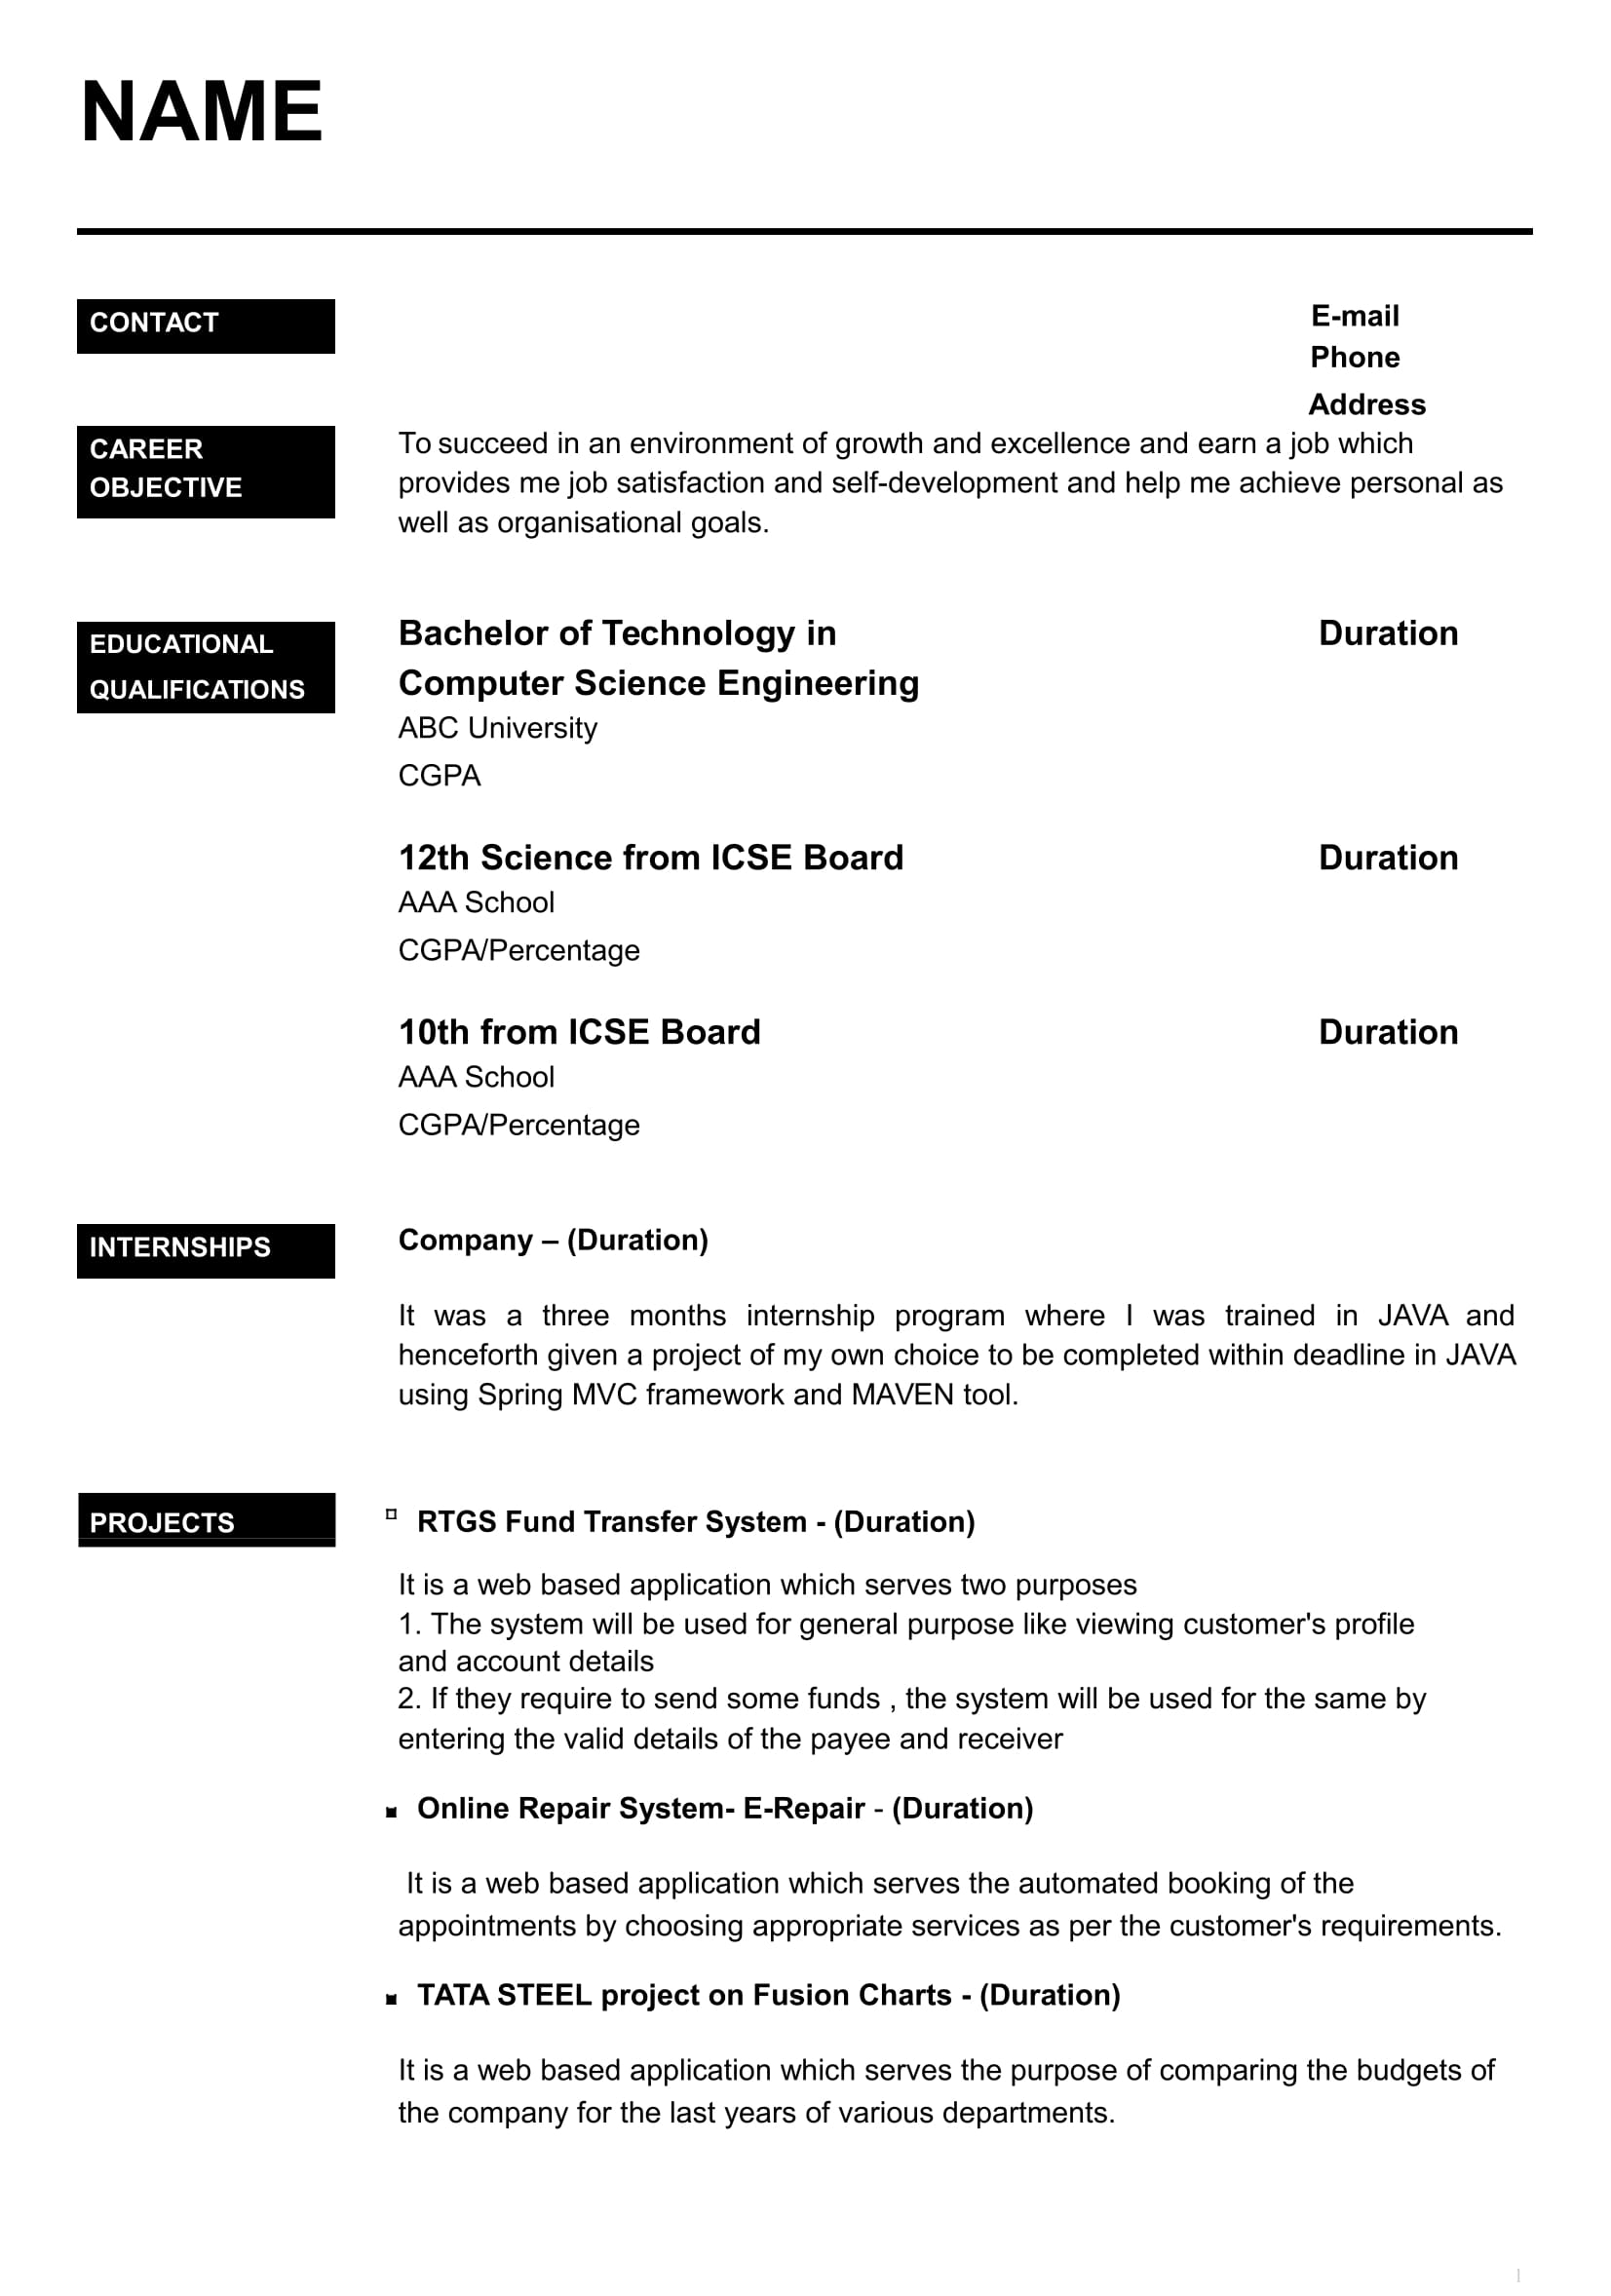 Standard Resume Format Template 32 Resume Templates For Freshers Download Free Word Format